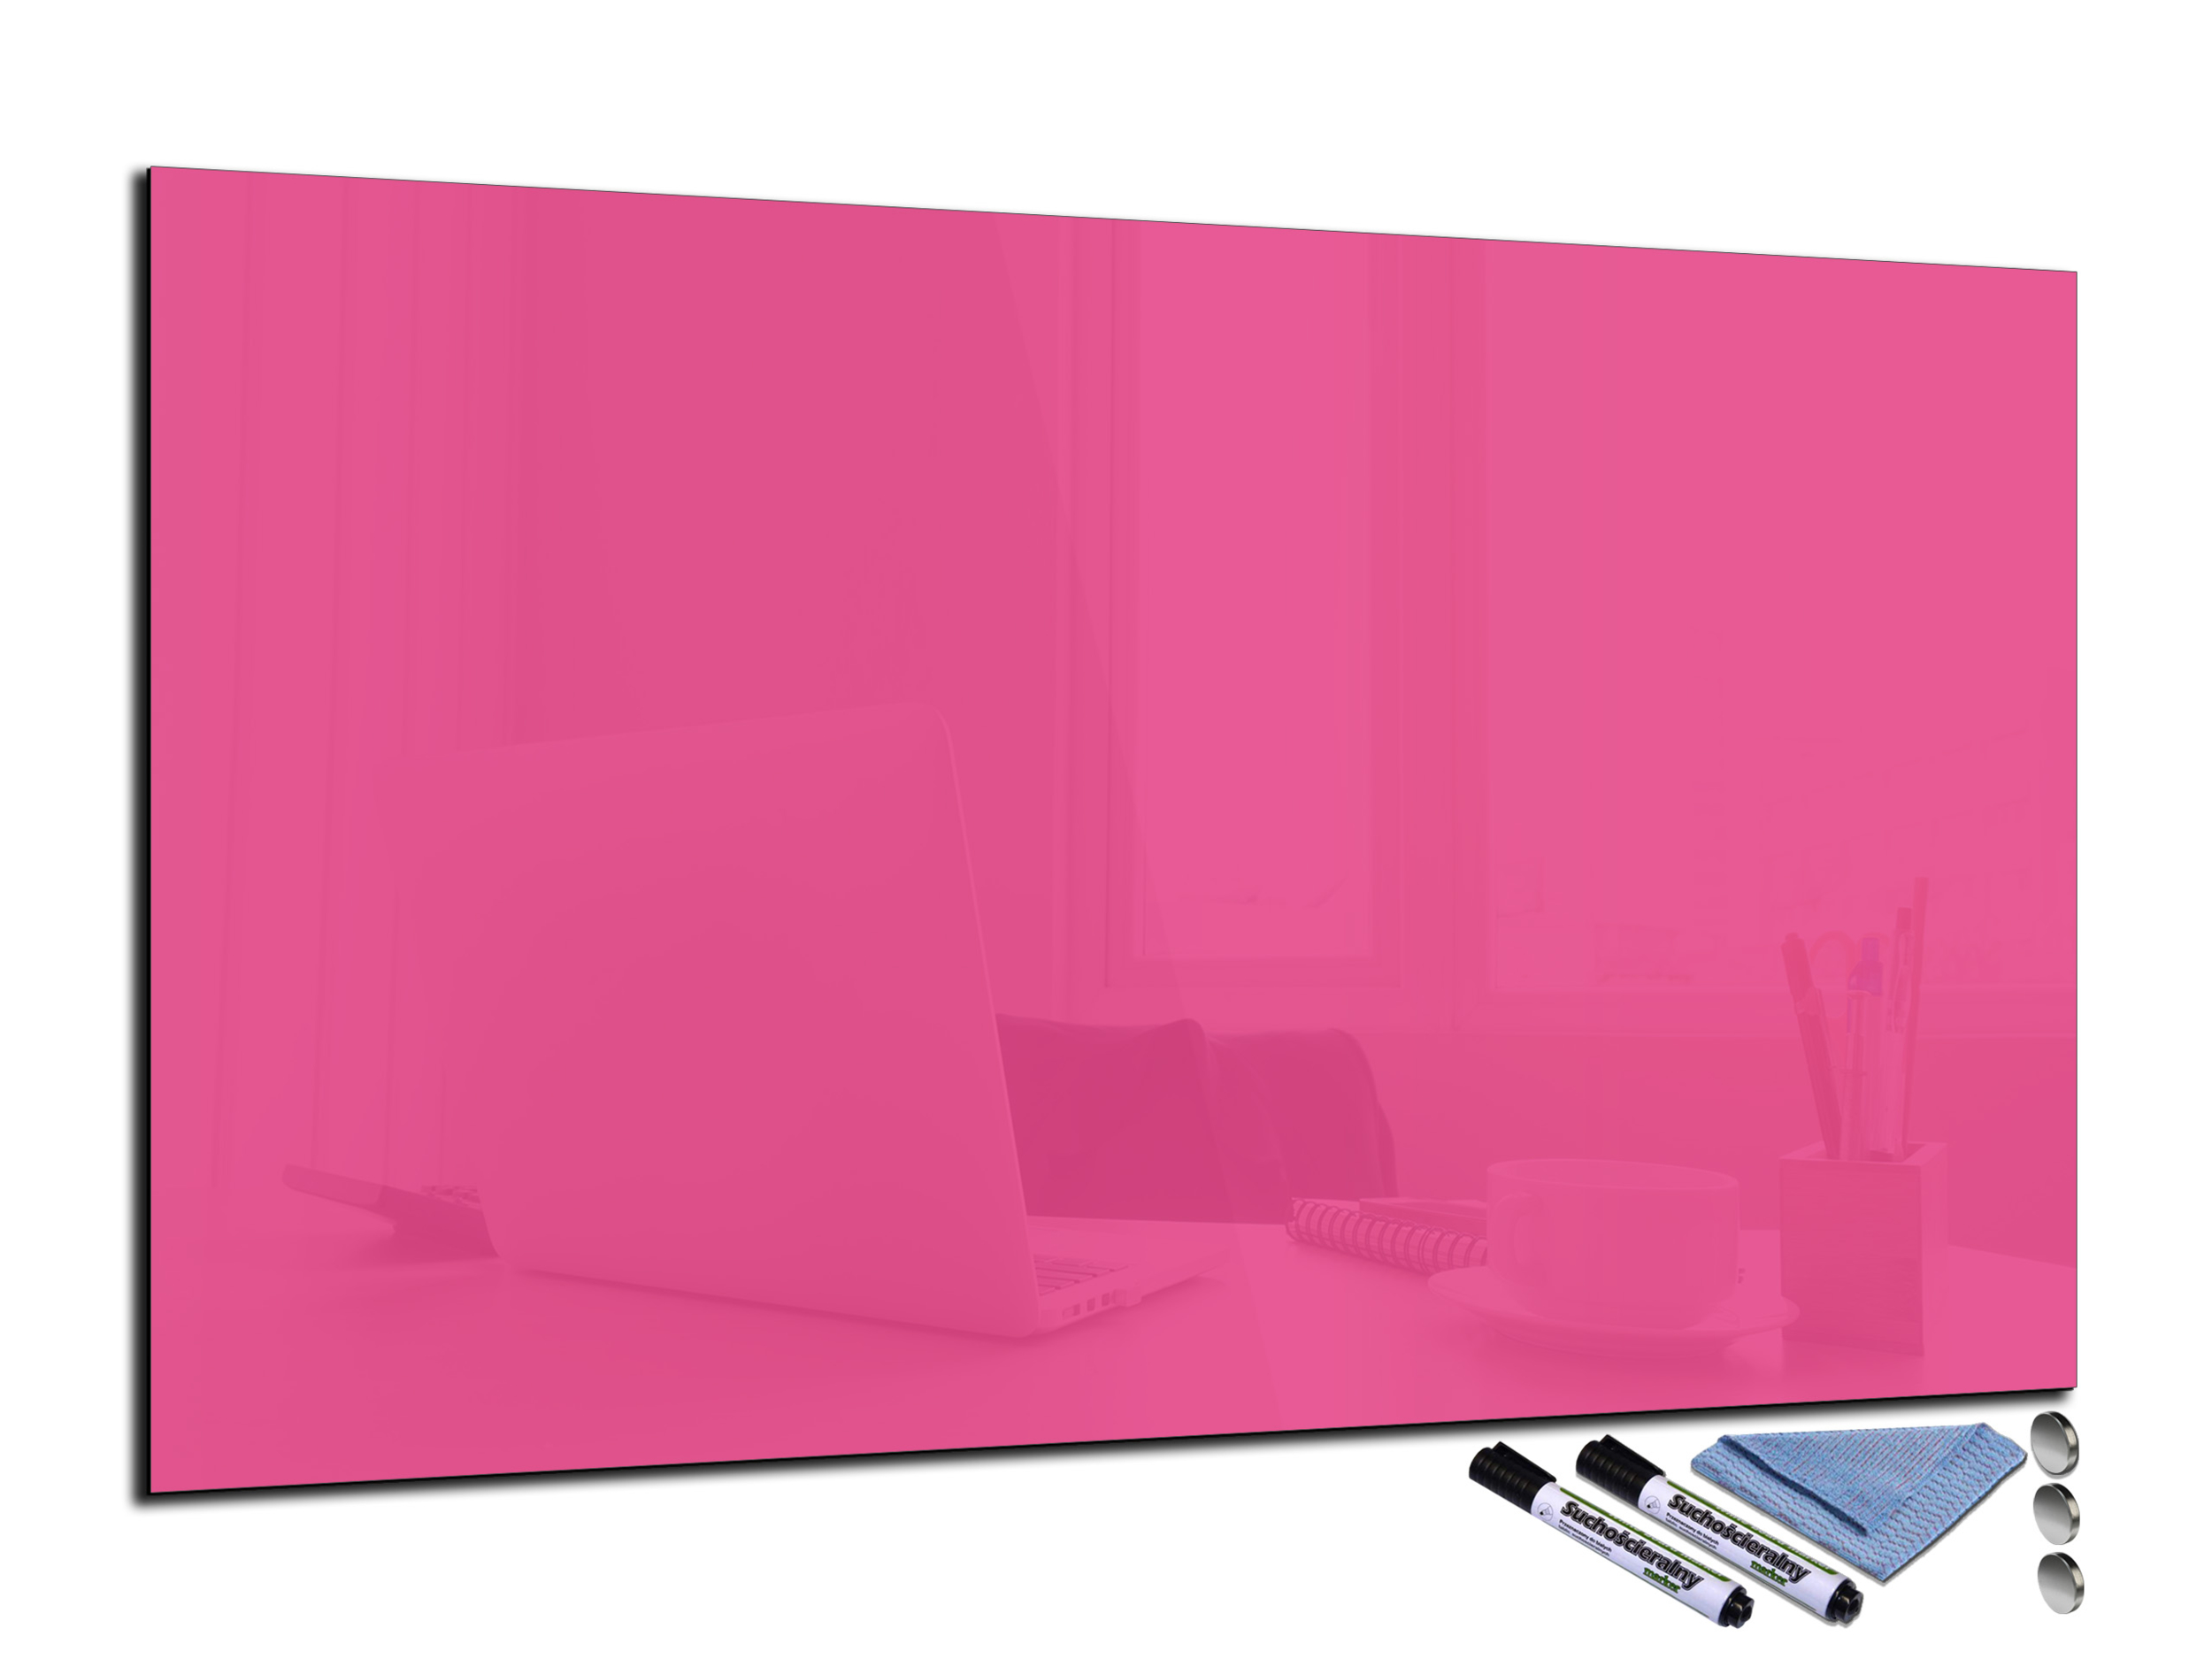 tableau magn tique rose fushia en verre effa able. Black Bedroom Furniture Sets. Home Design Ideas